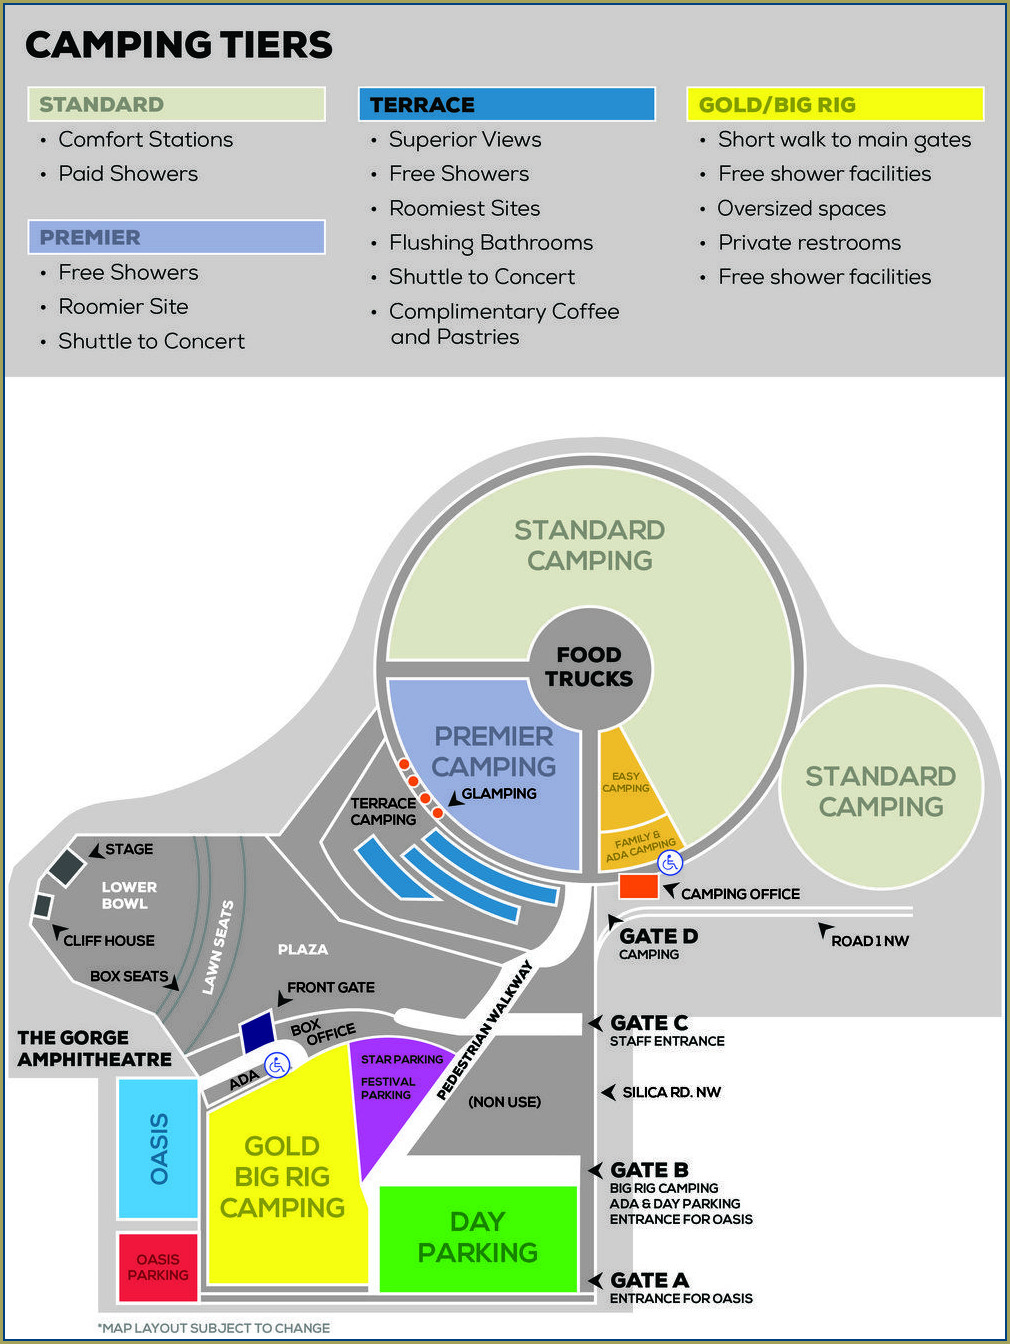 Gorge Amphitheater Camping Map